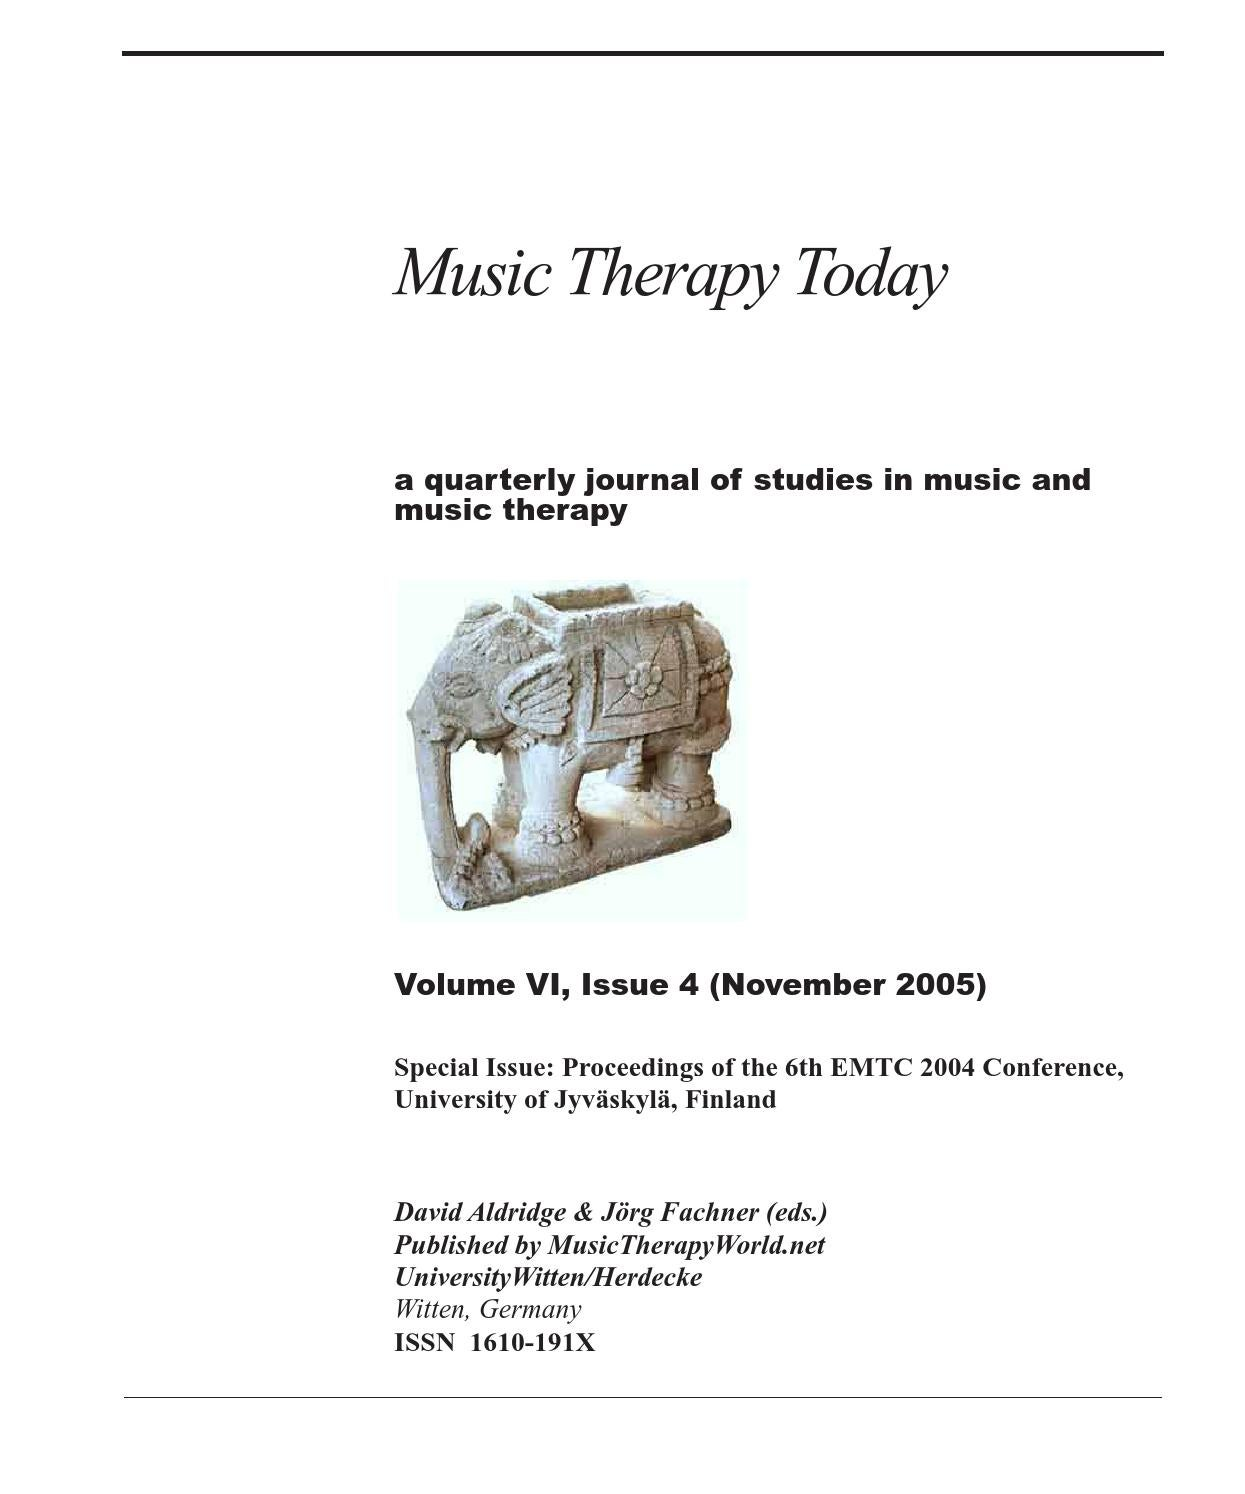 argumentative essay about music therapy